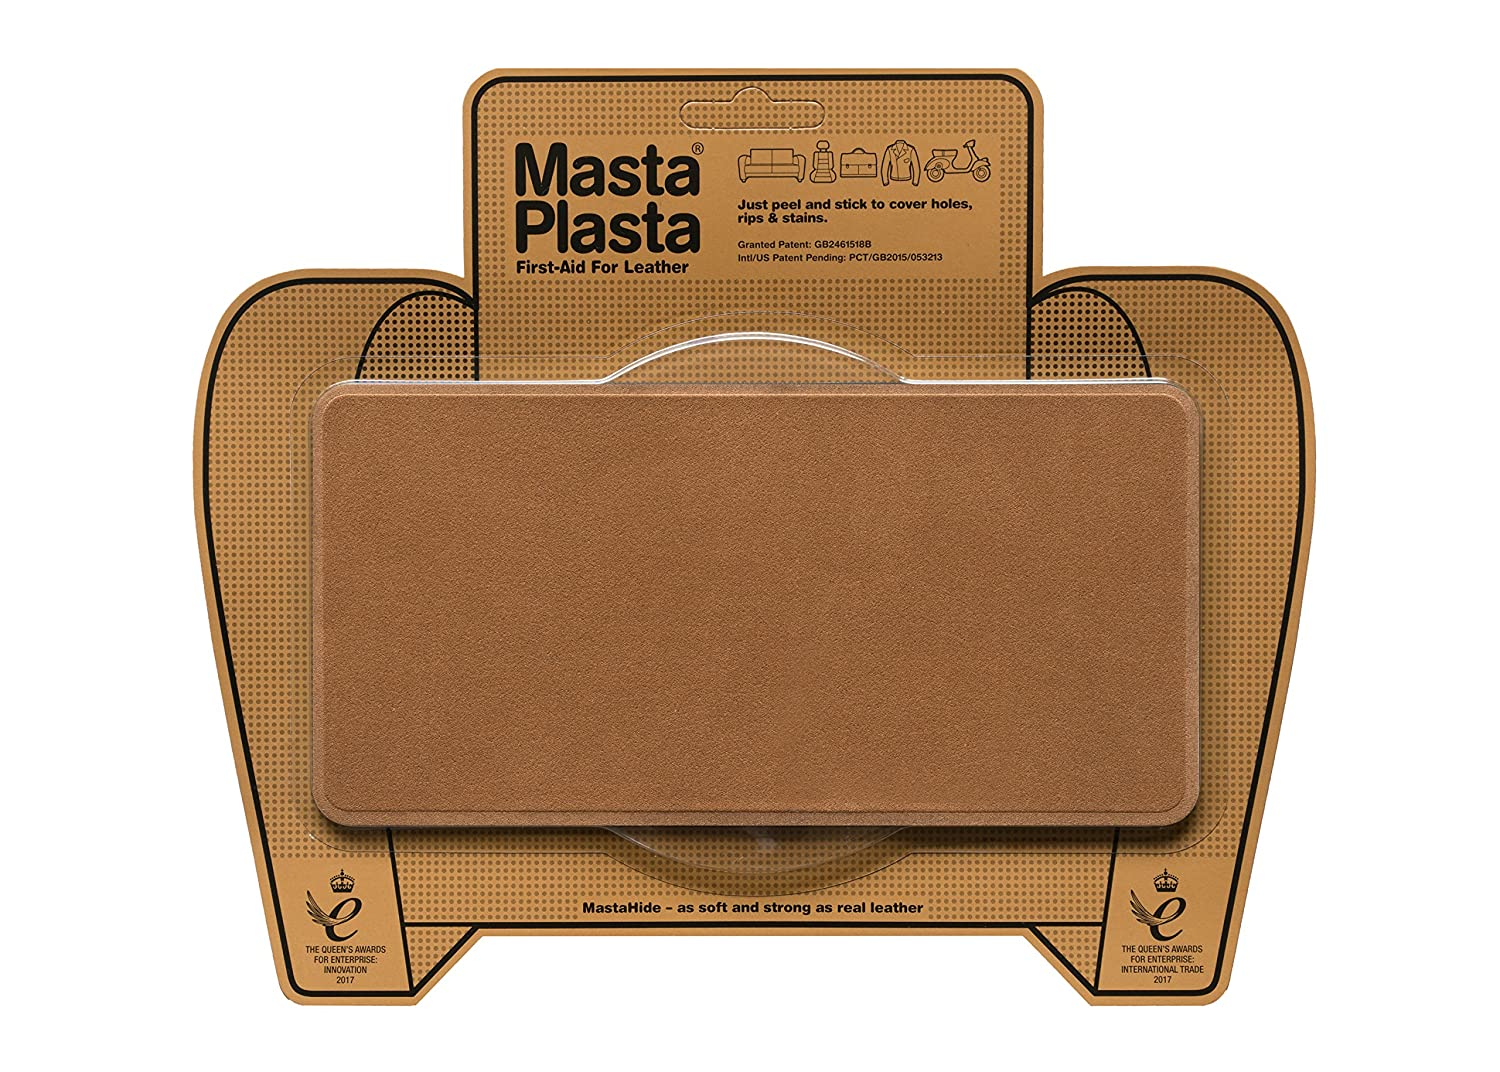 MastaPlasta Self-Adhesive Patch for Leather and Vinyl Repair, Large, Suede, Brown - 8 x 4 Inch - Multiple Colors Available